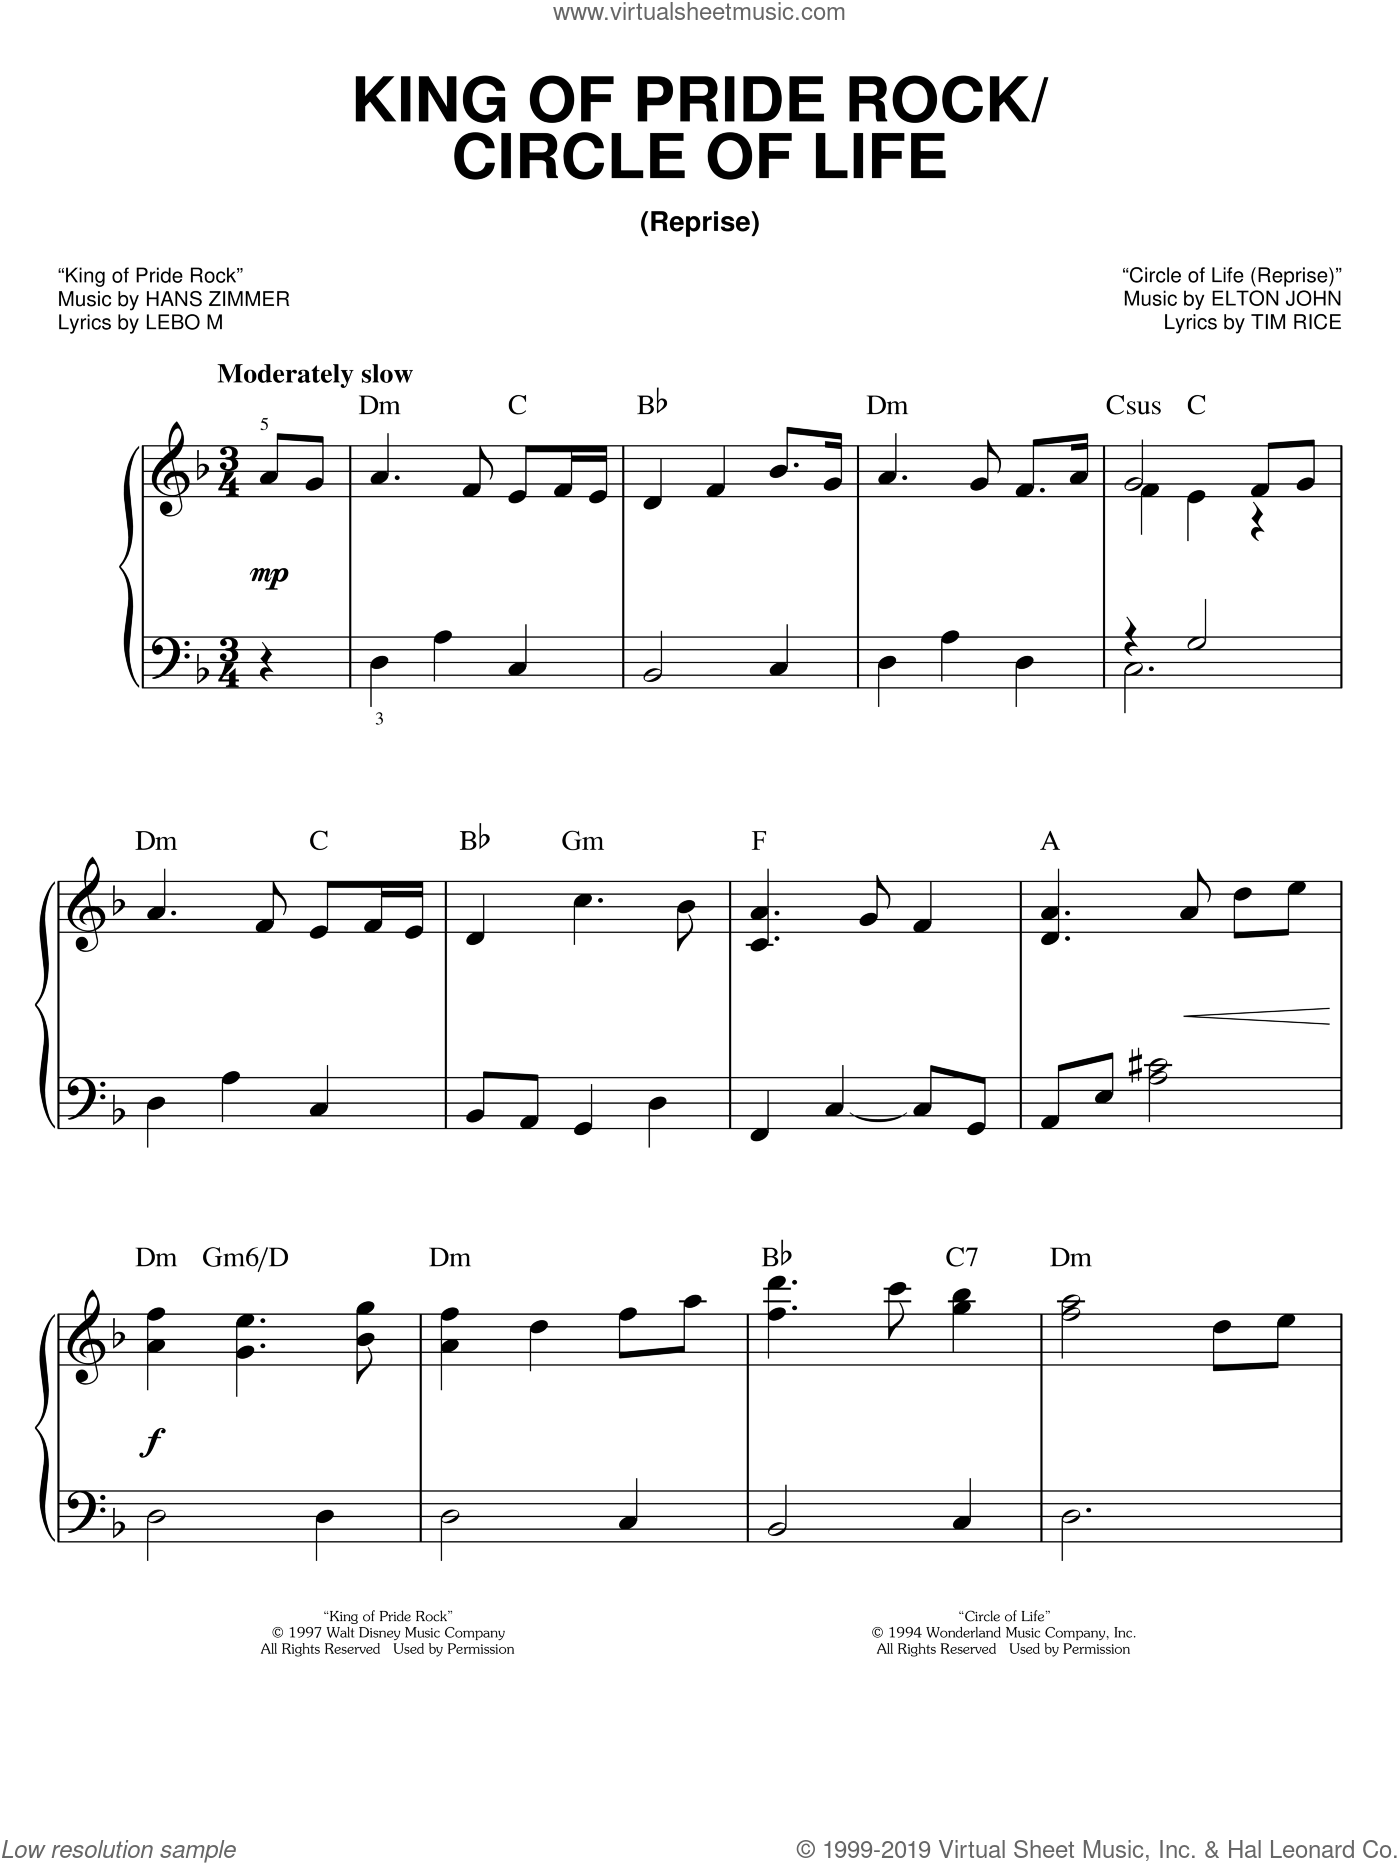 King Of Pride Rock sheet music for piano solo by Tim Rice, Elton John and Hans Zimmer. Score Image Preview.